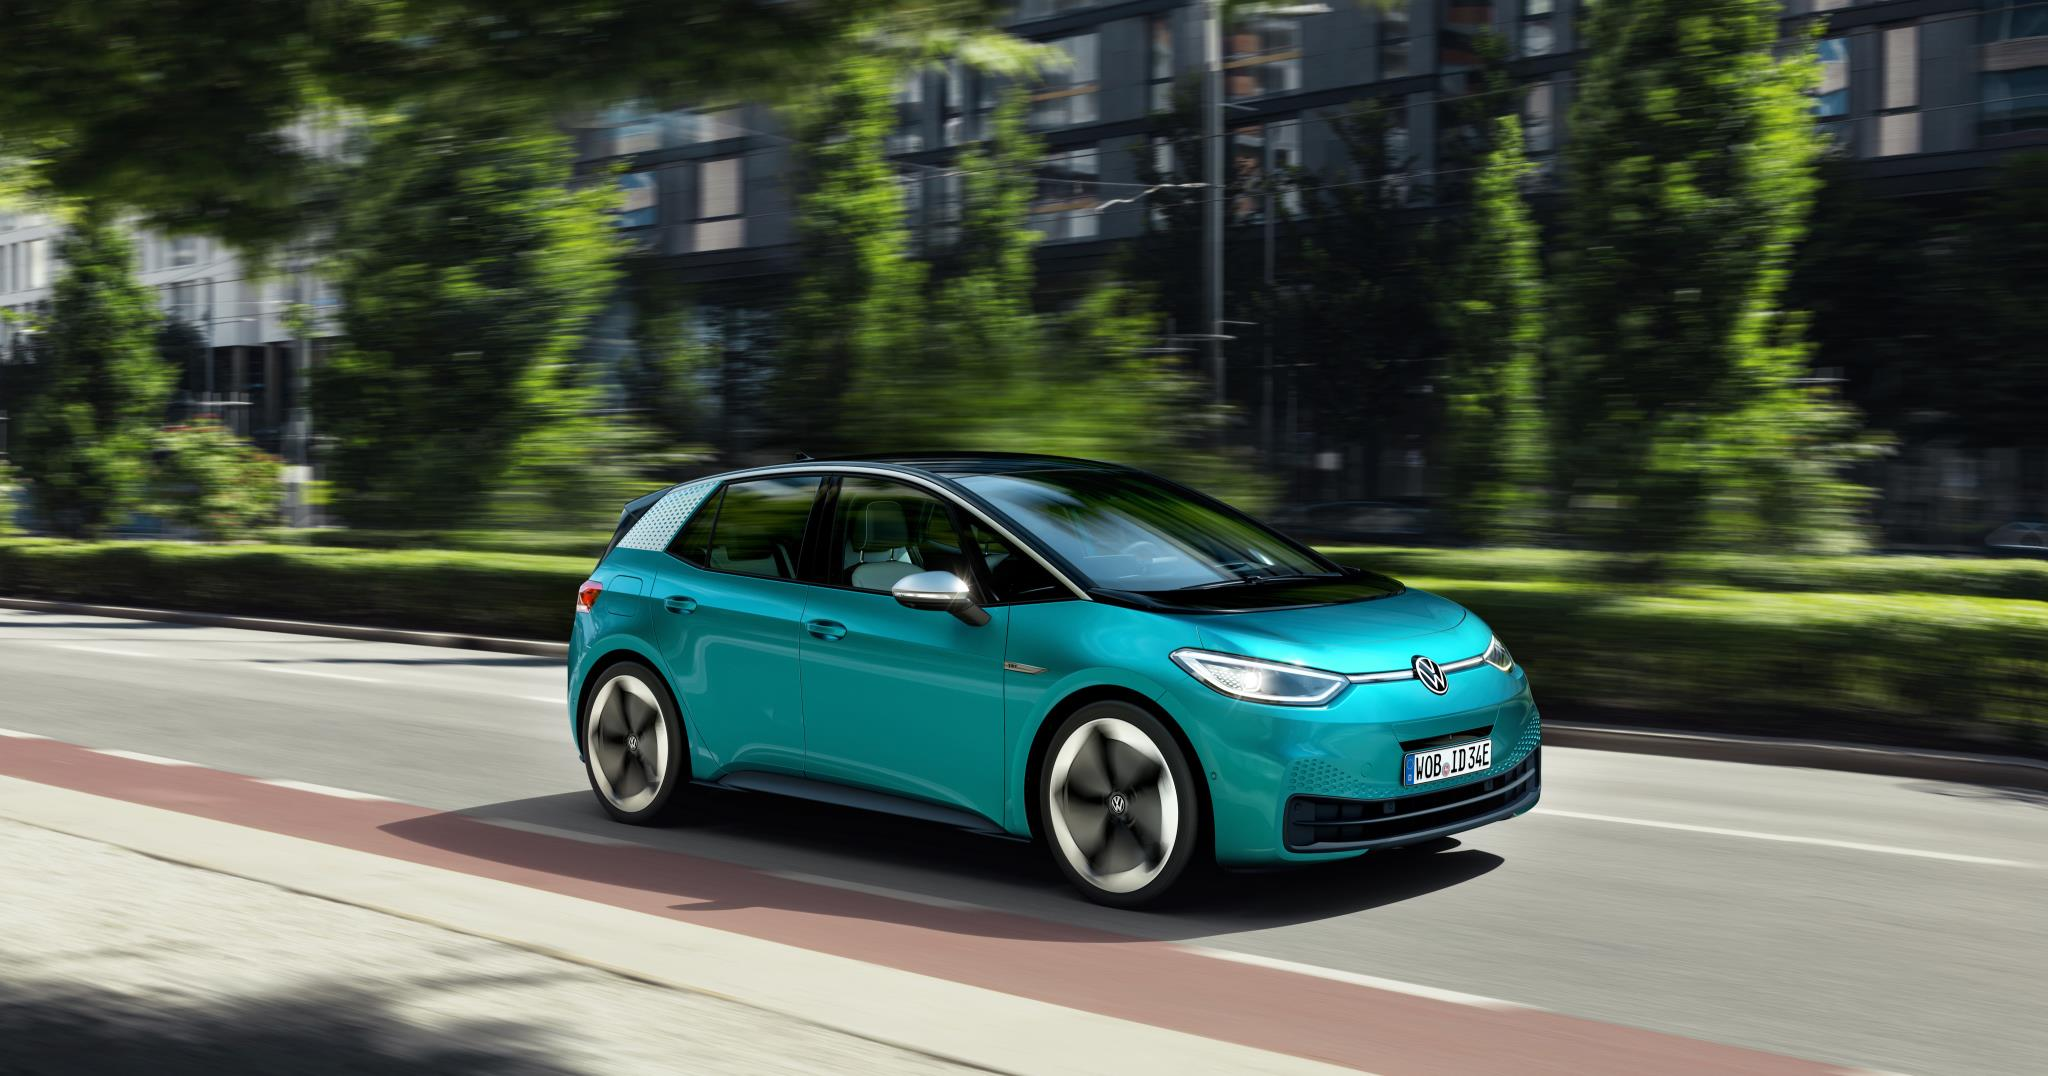 Bright turquoise blue Volkswagen ID 3 driving at speed